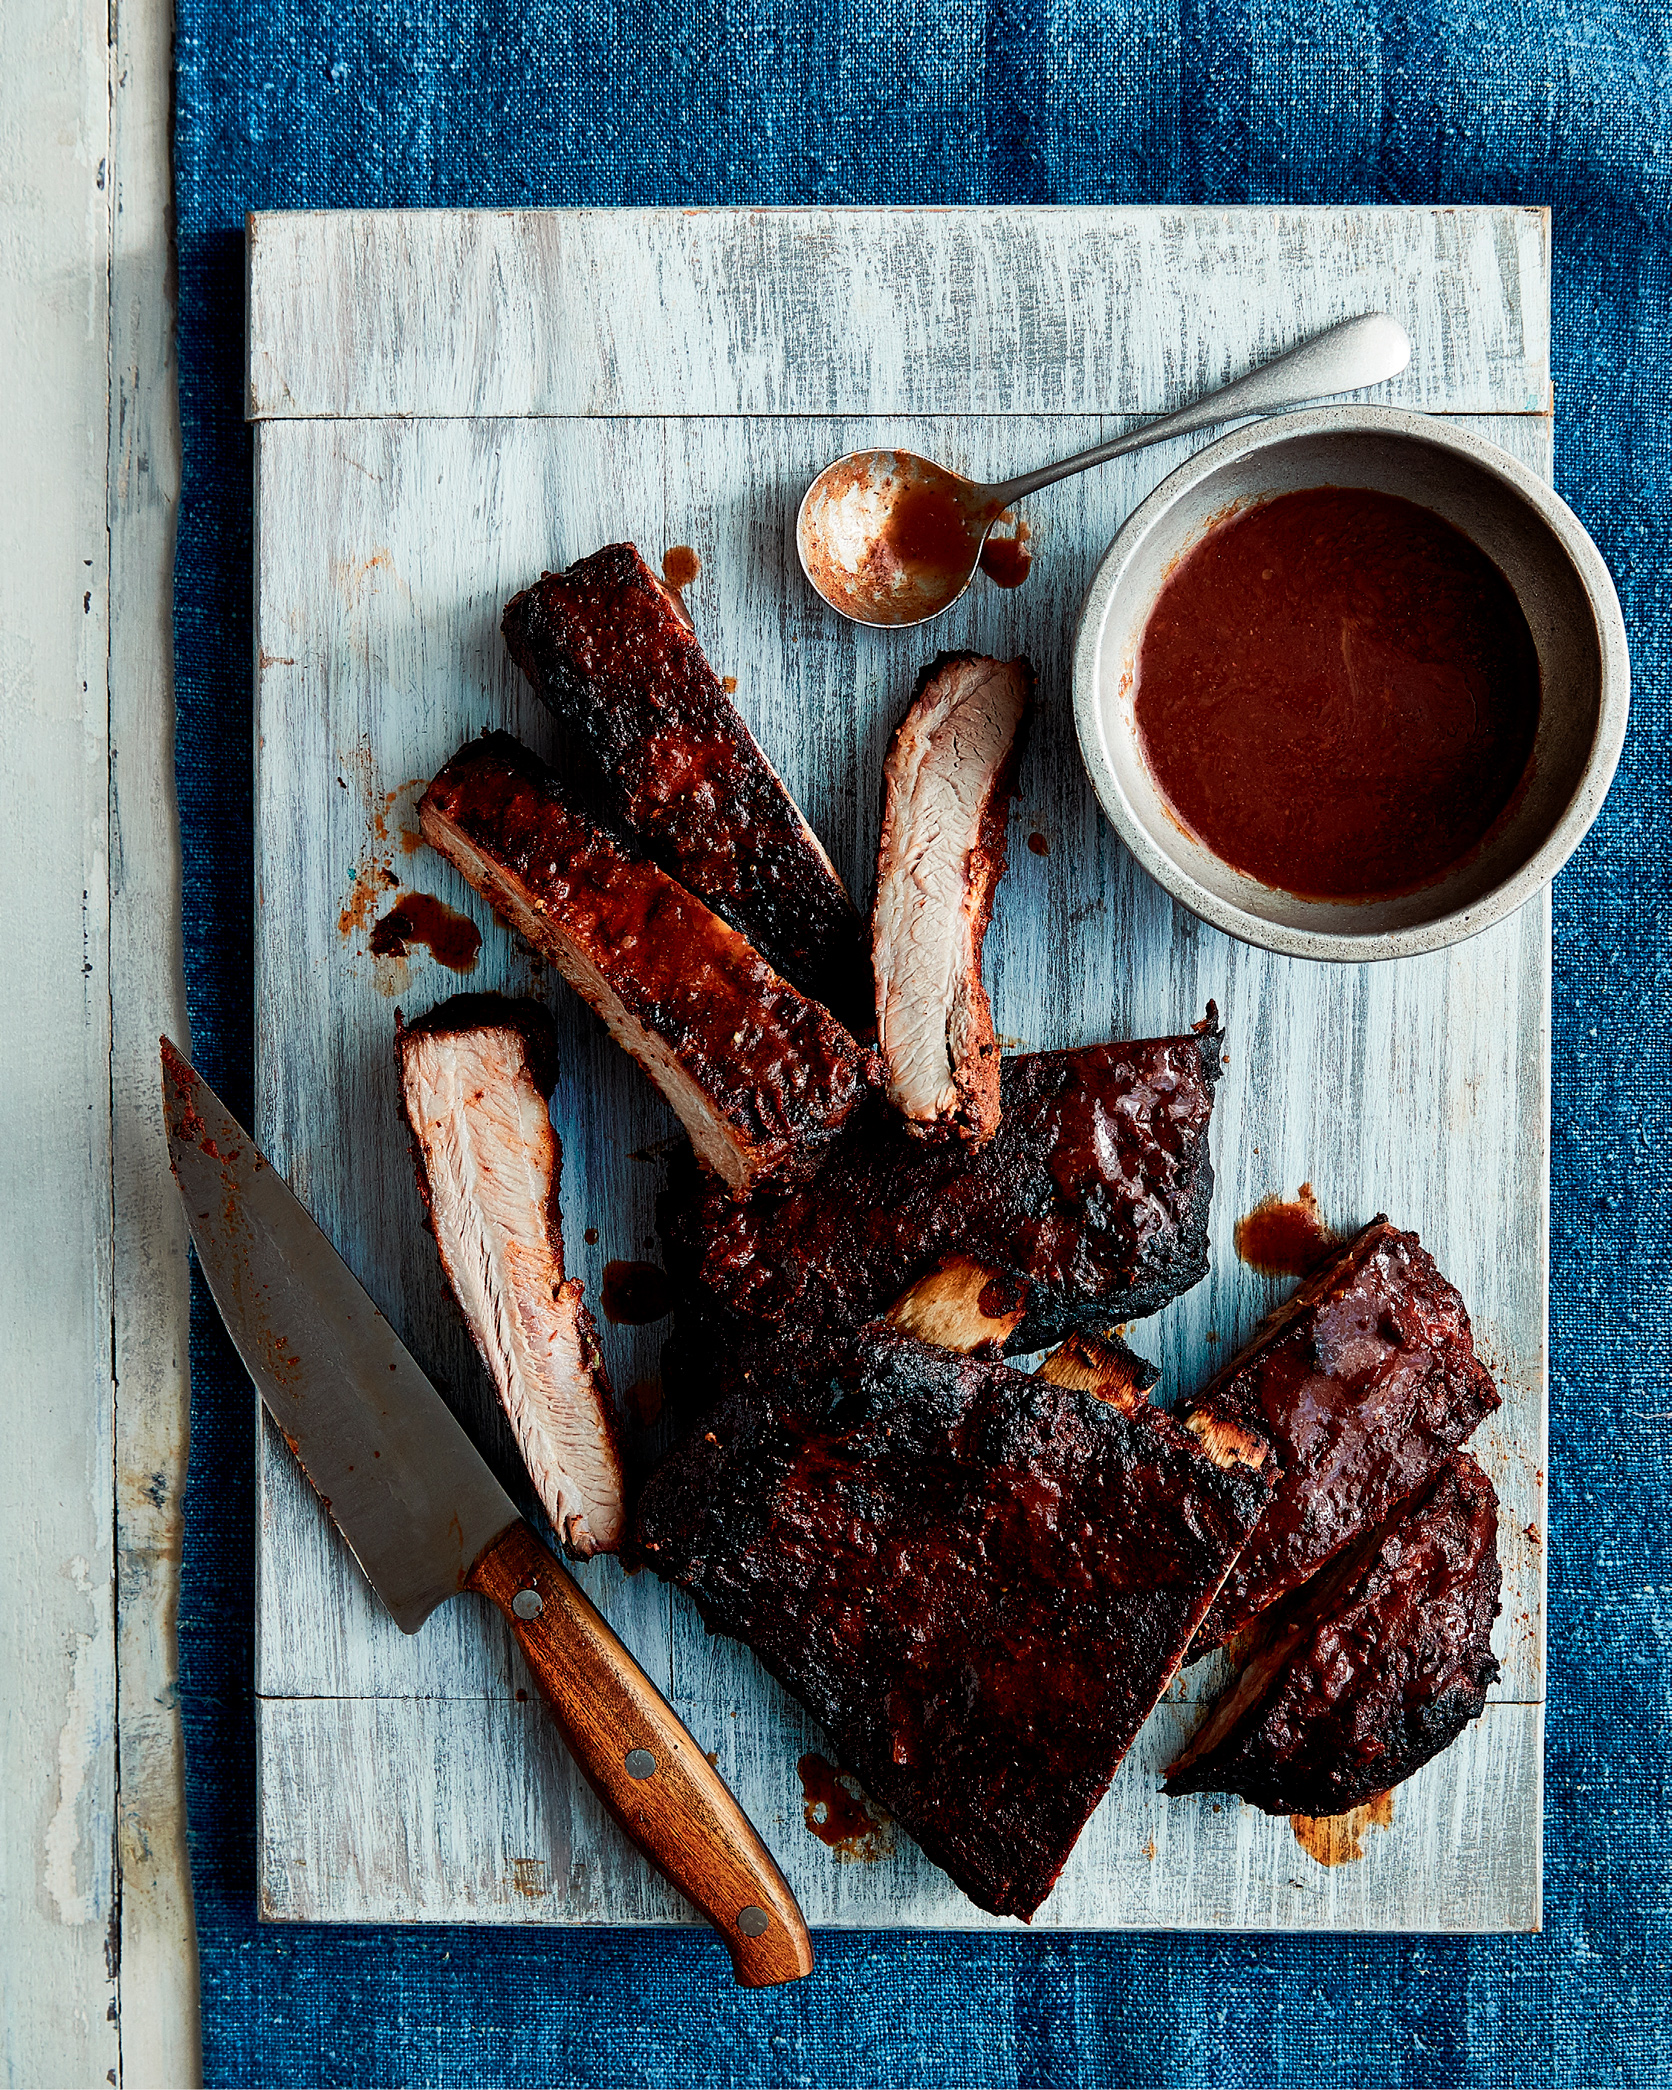 Barbecued Ribs